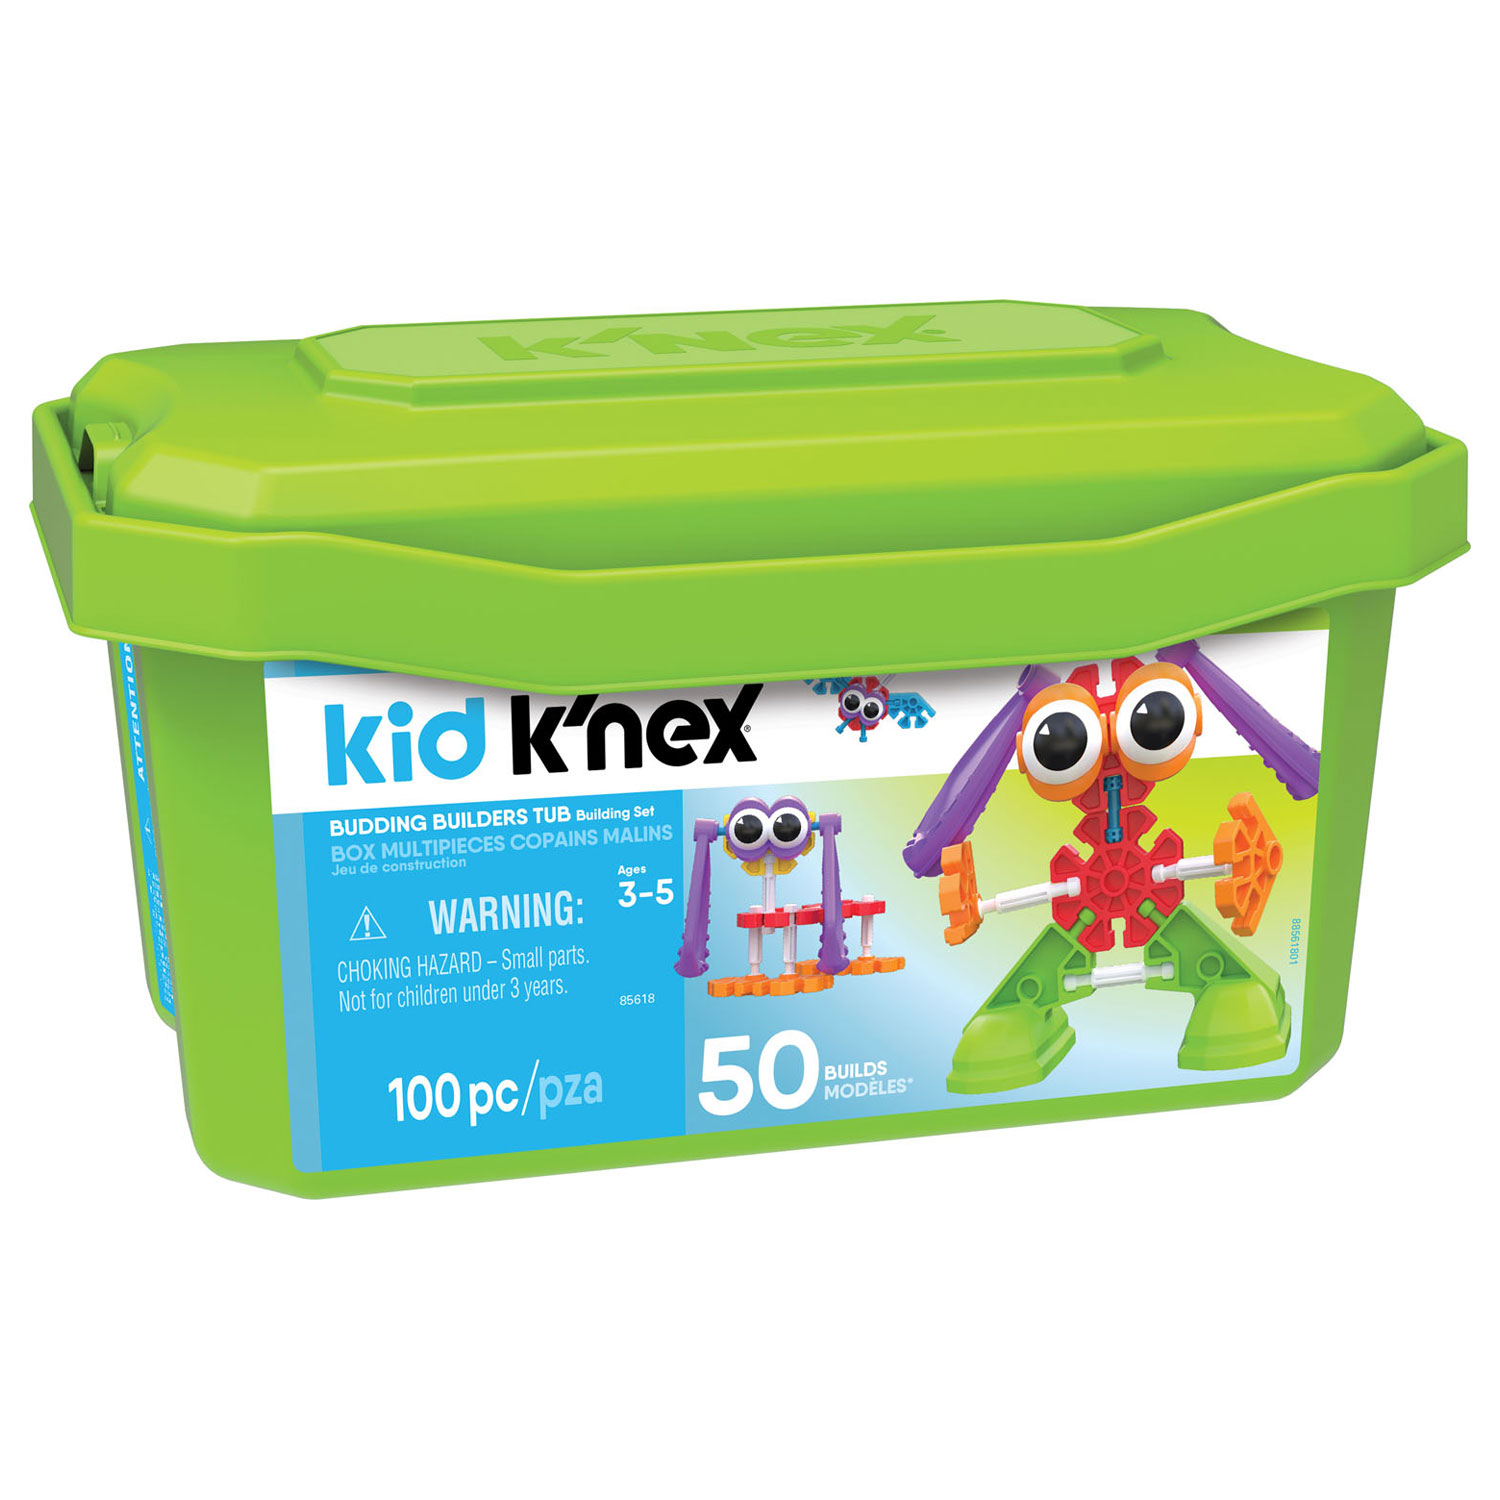 Kid K'Nex Budding Builders Startersbox